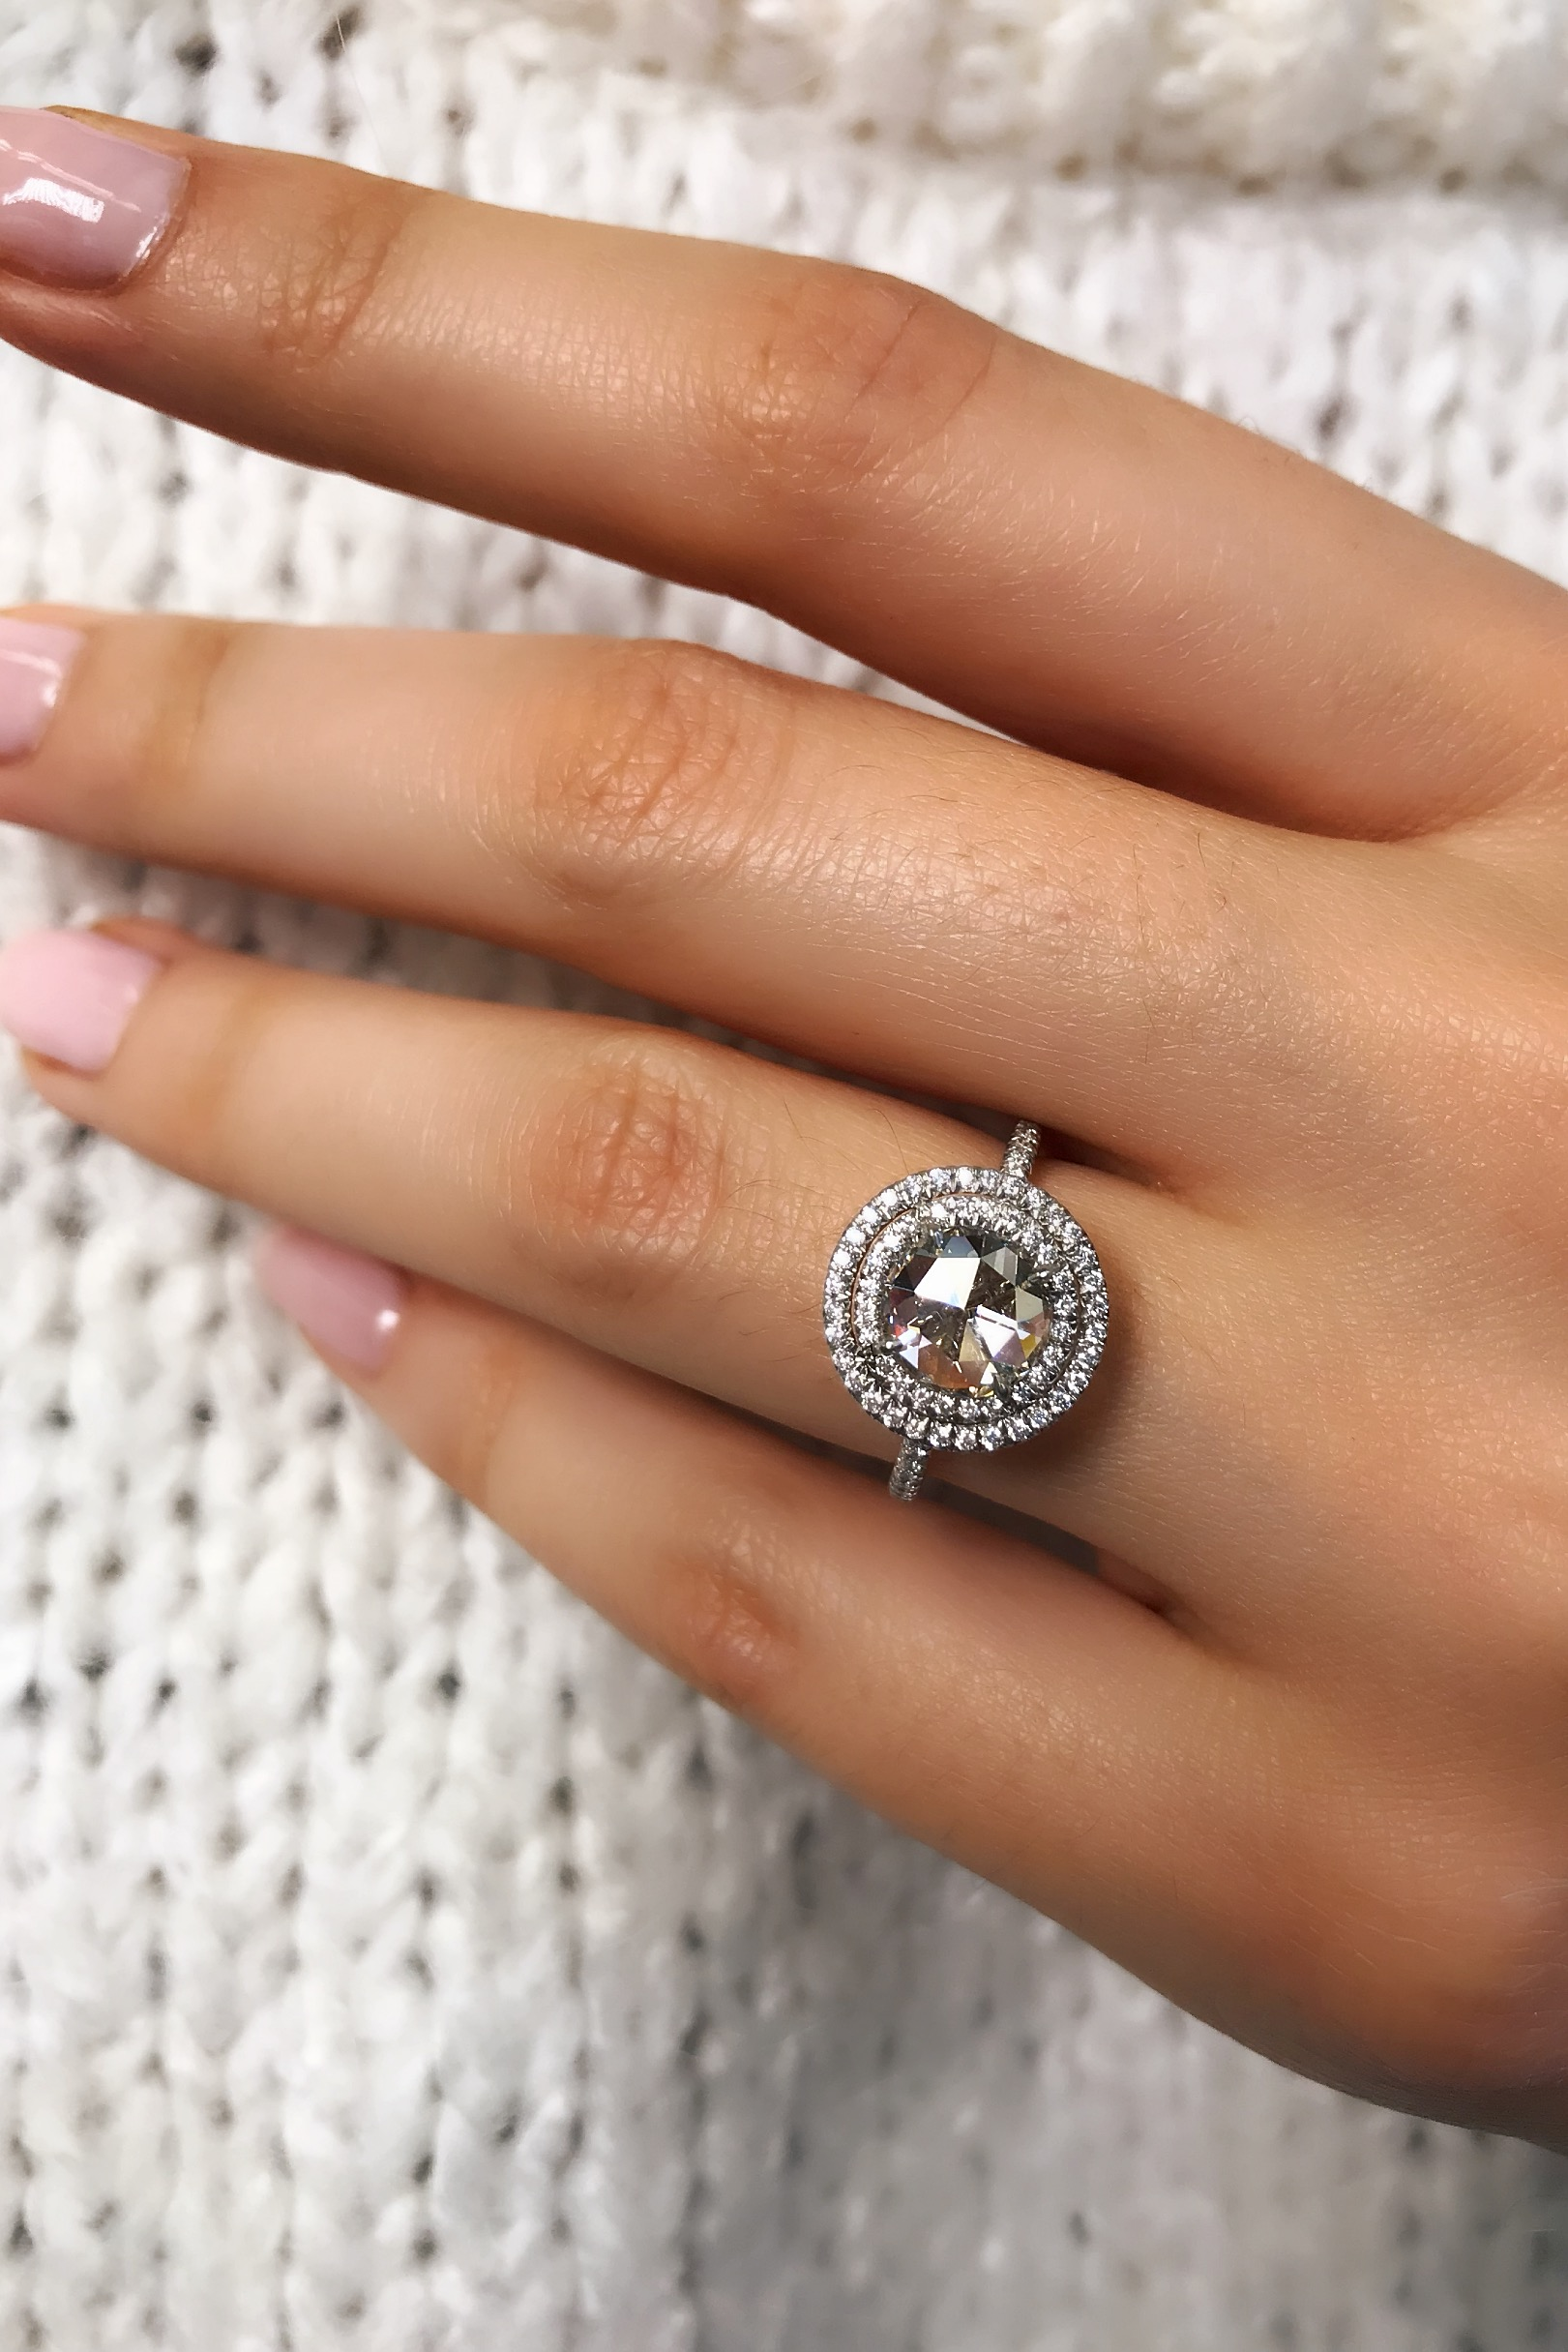 Round Diamond double Halo Engagement Ring In Platinum - This diamond engagement ring with double halo adds dimension and volume to a round rose cut diamond! This feminine engagement ring with large facets and a subtle sparkle feels like a vintage antique diamond engagement ring.